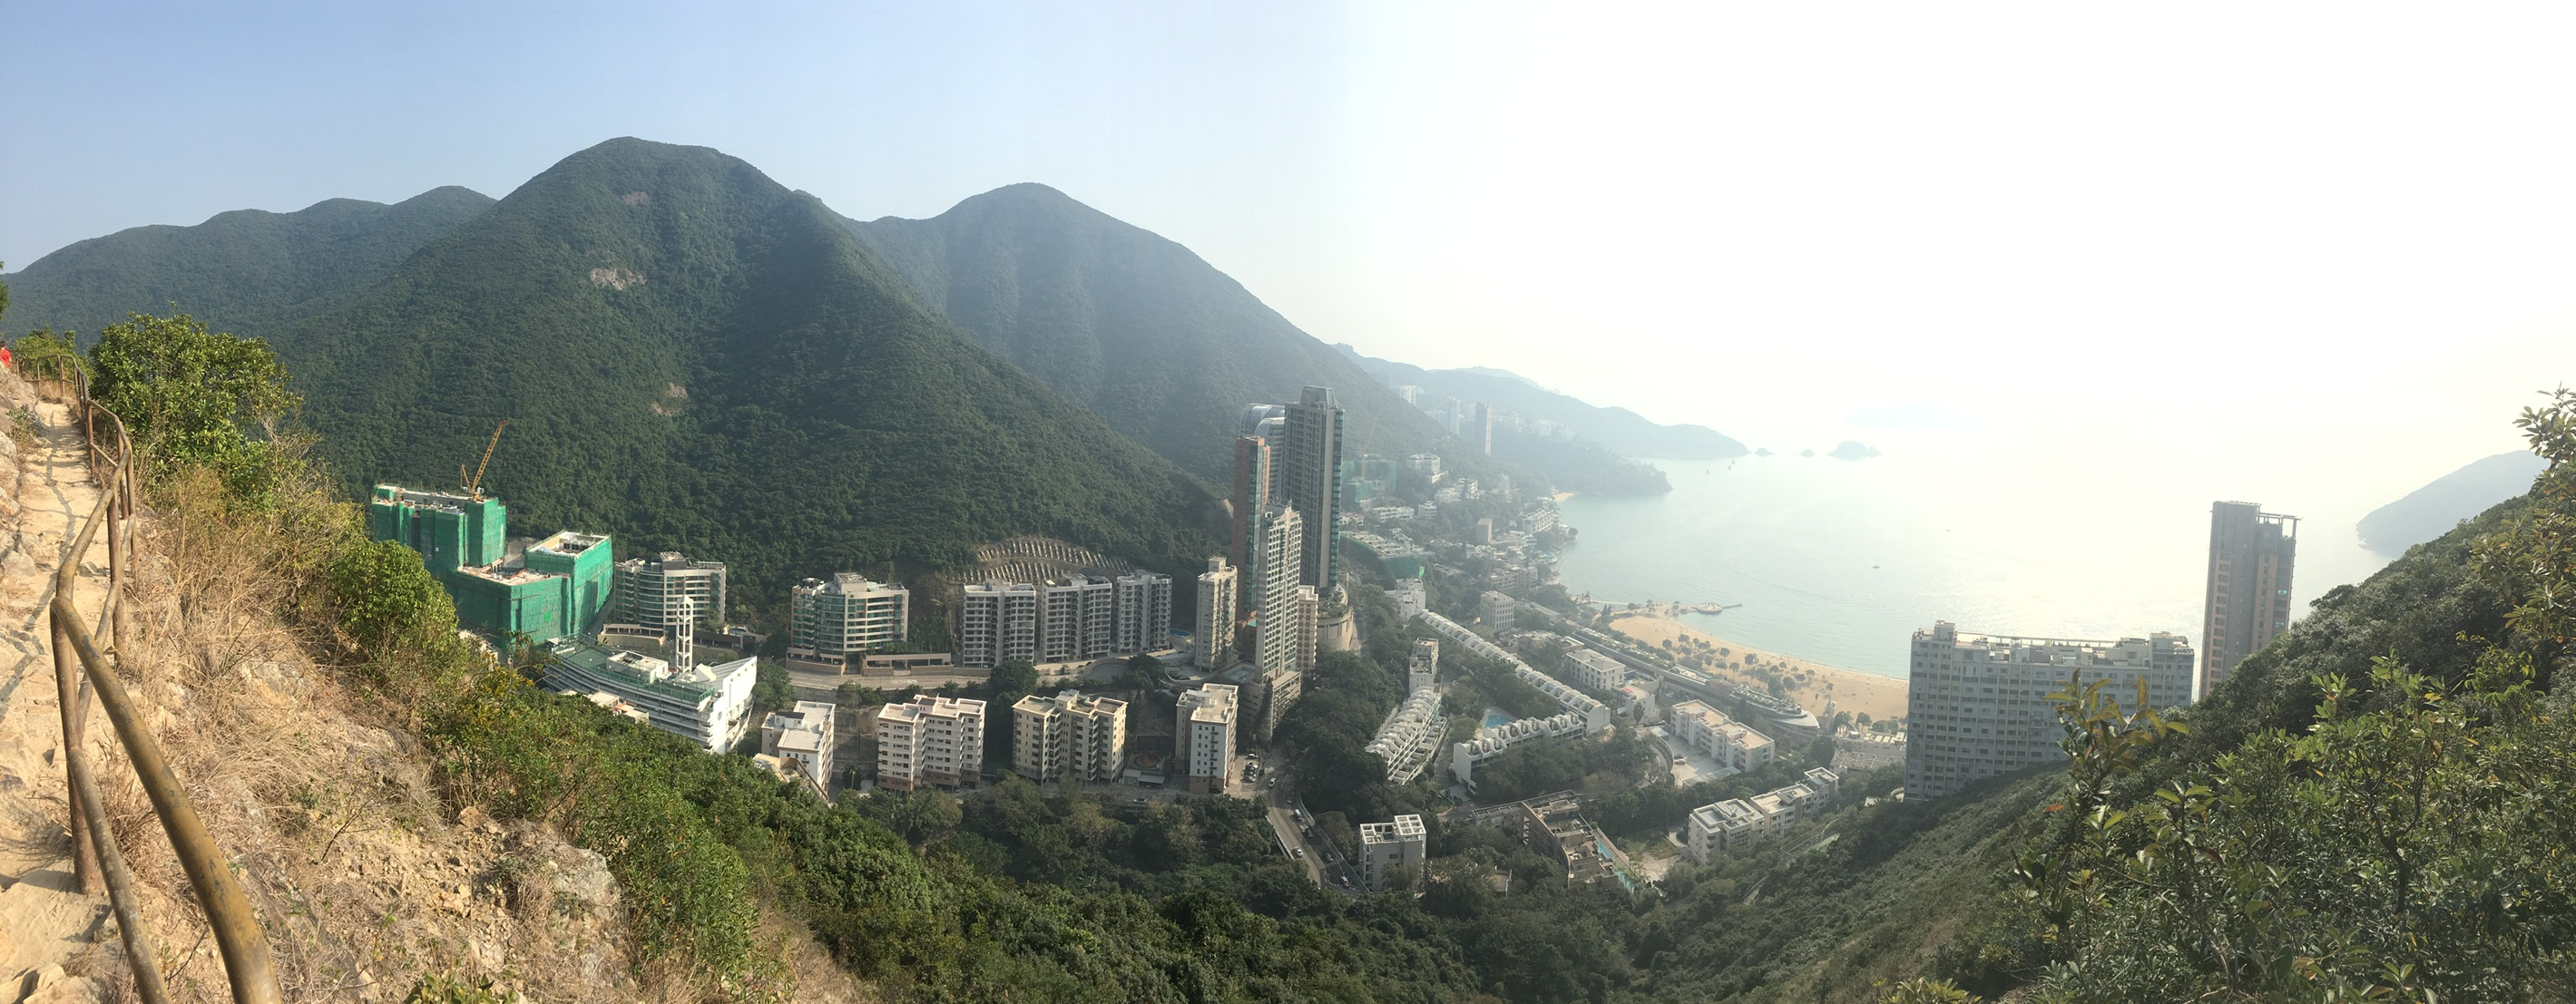 View of Repulse Bay from the Hike